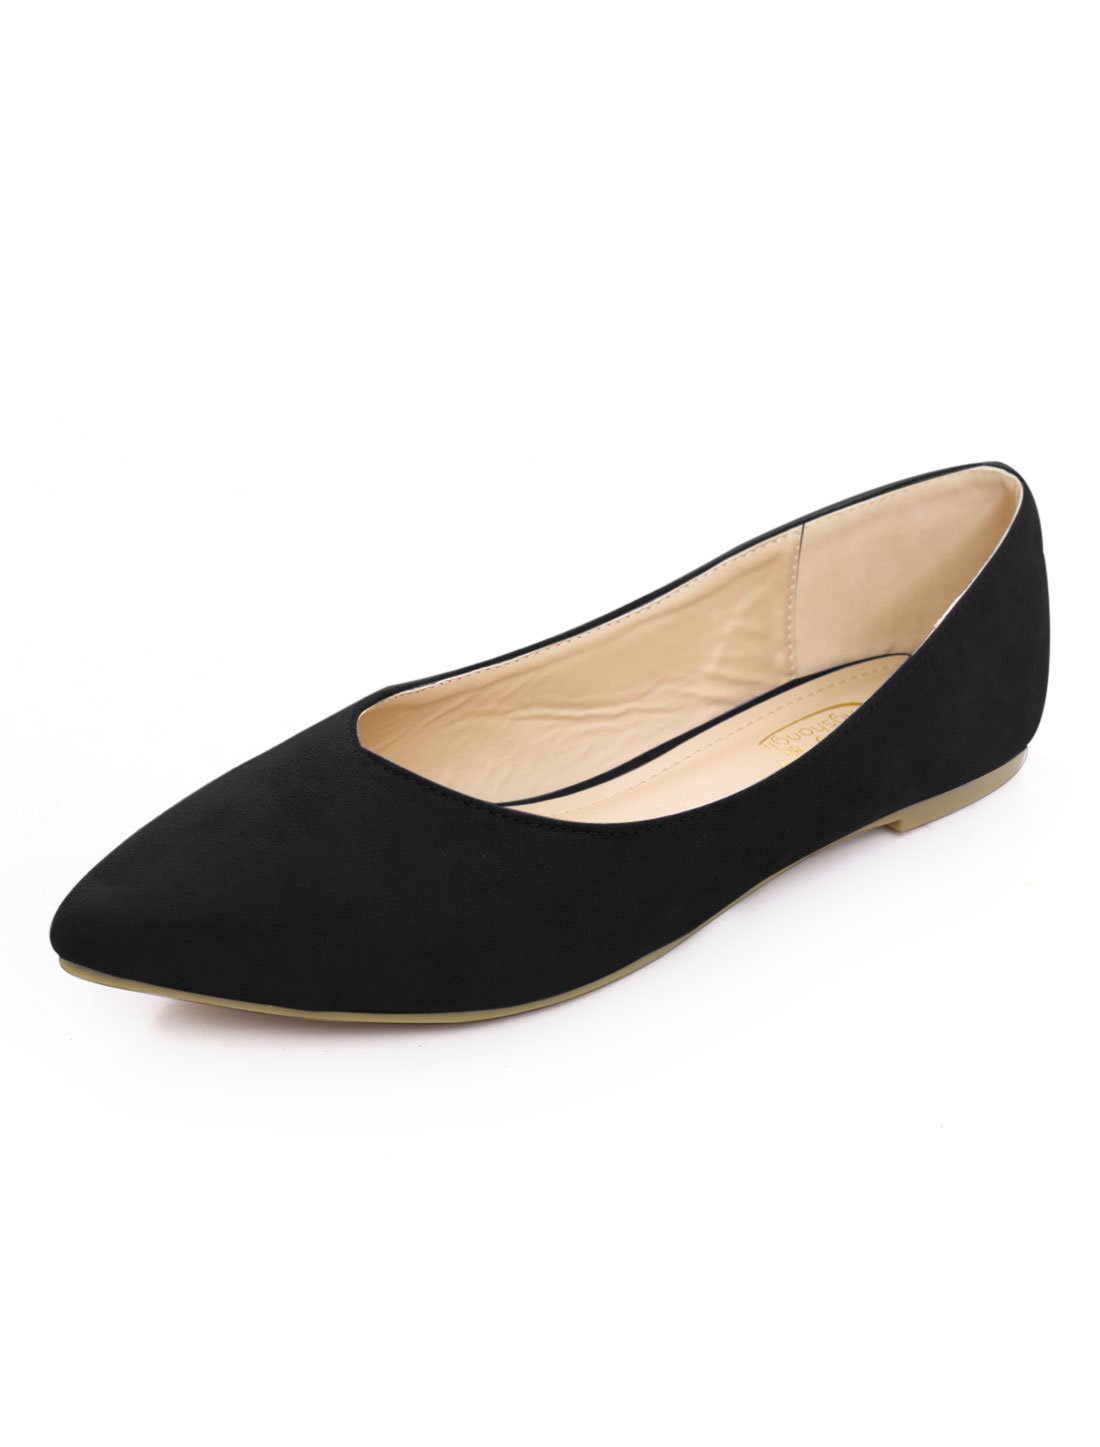 Women Faux Suede V-Cut Vamp Pointed Toe Ballet Flat Bronze Black US 10